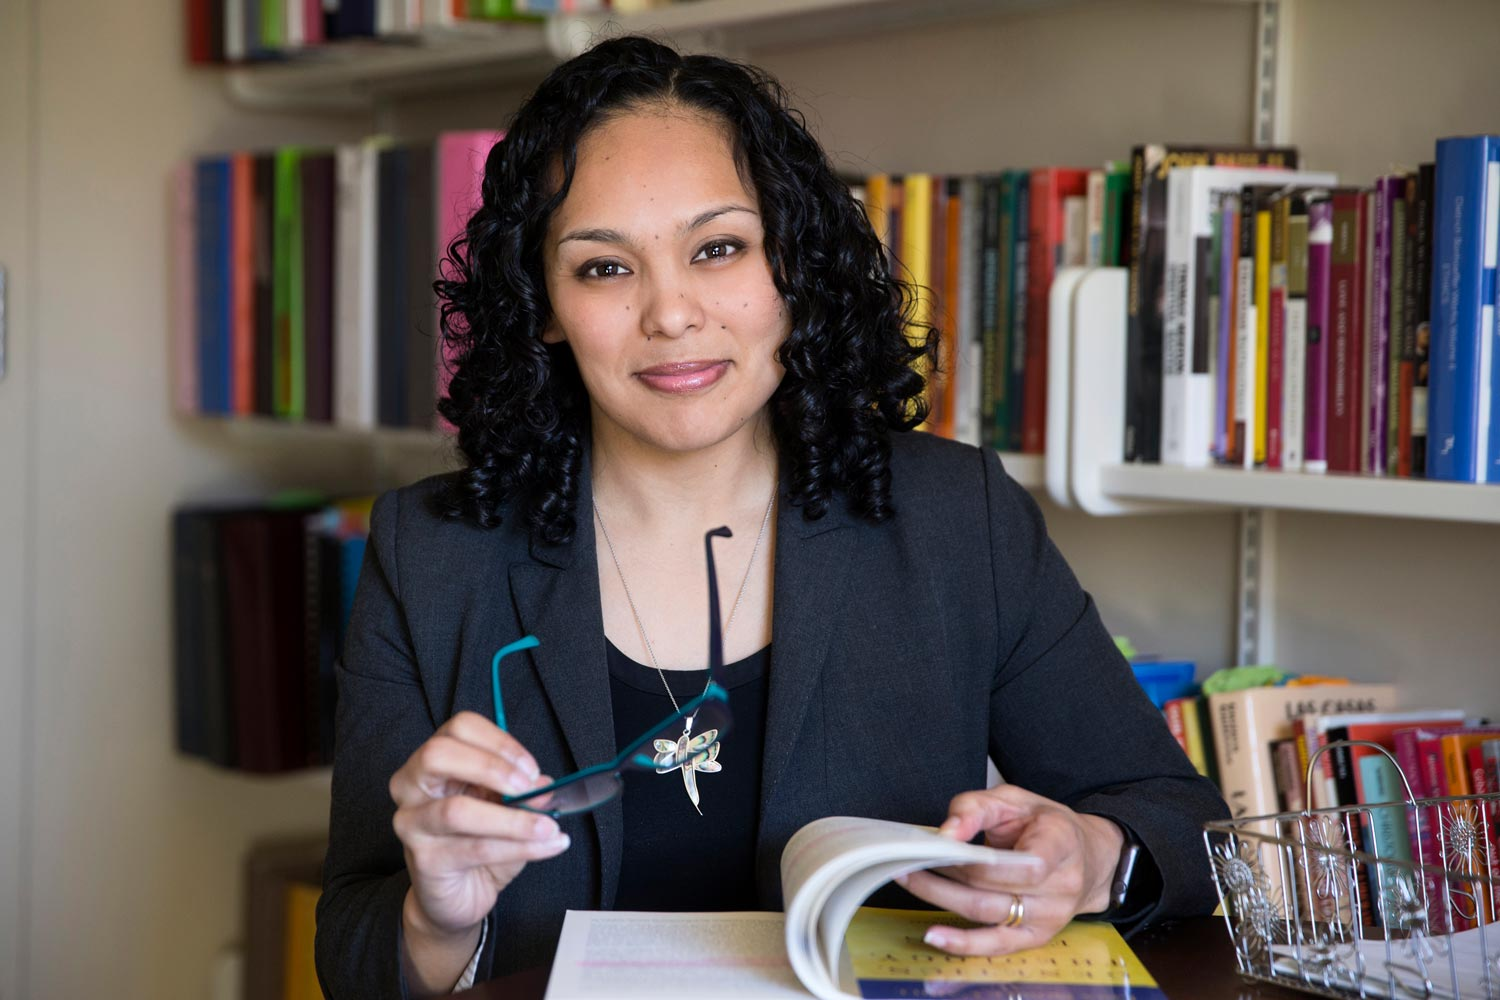 Nichole Flores is an assistant professor in UVA's religious studies department who specializes in Catholicism.